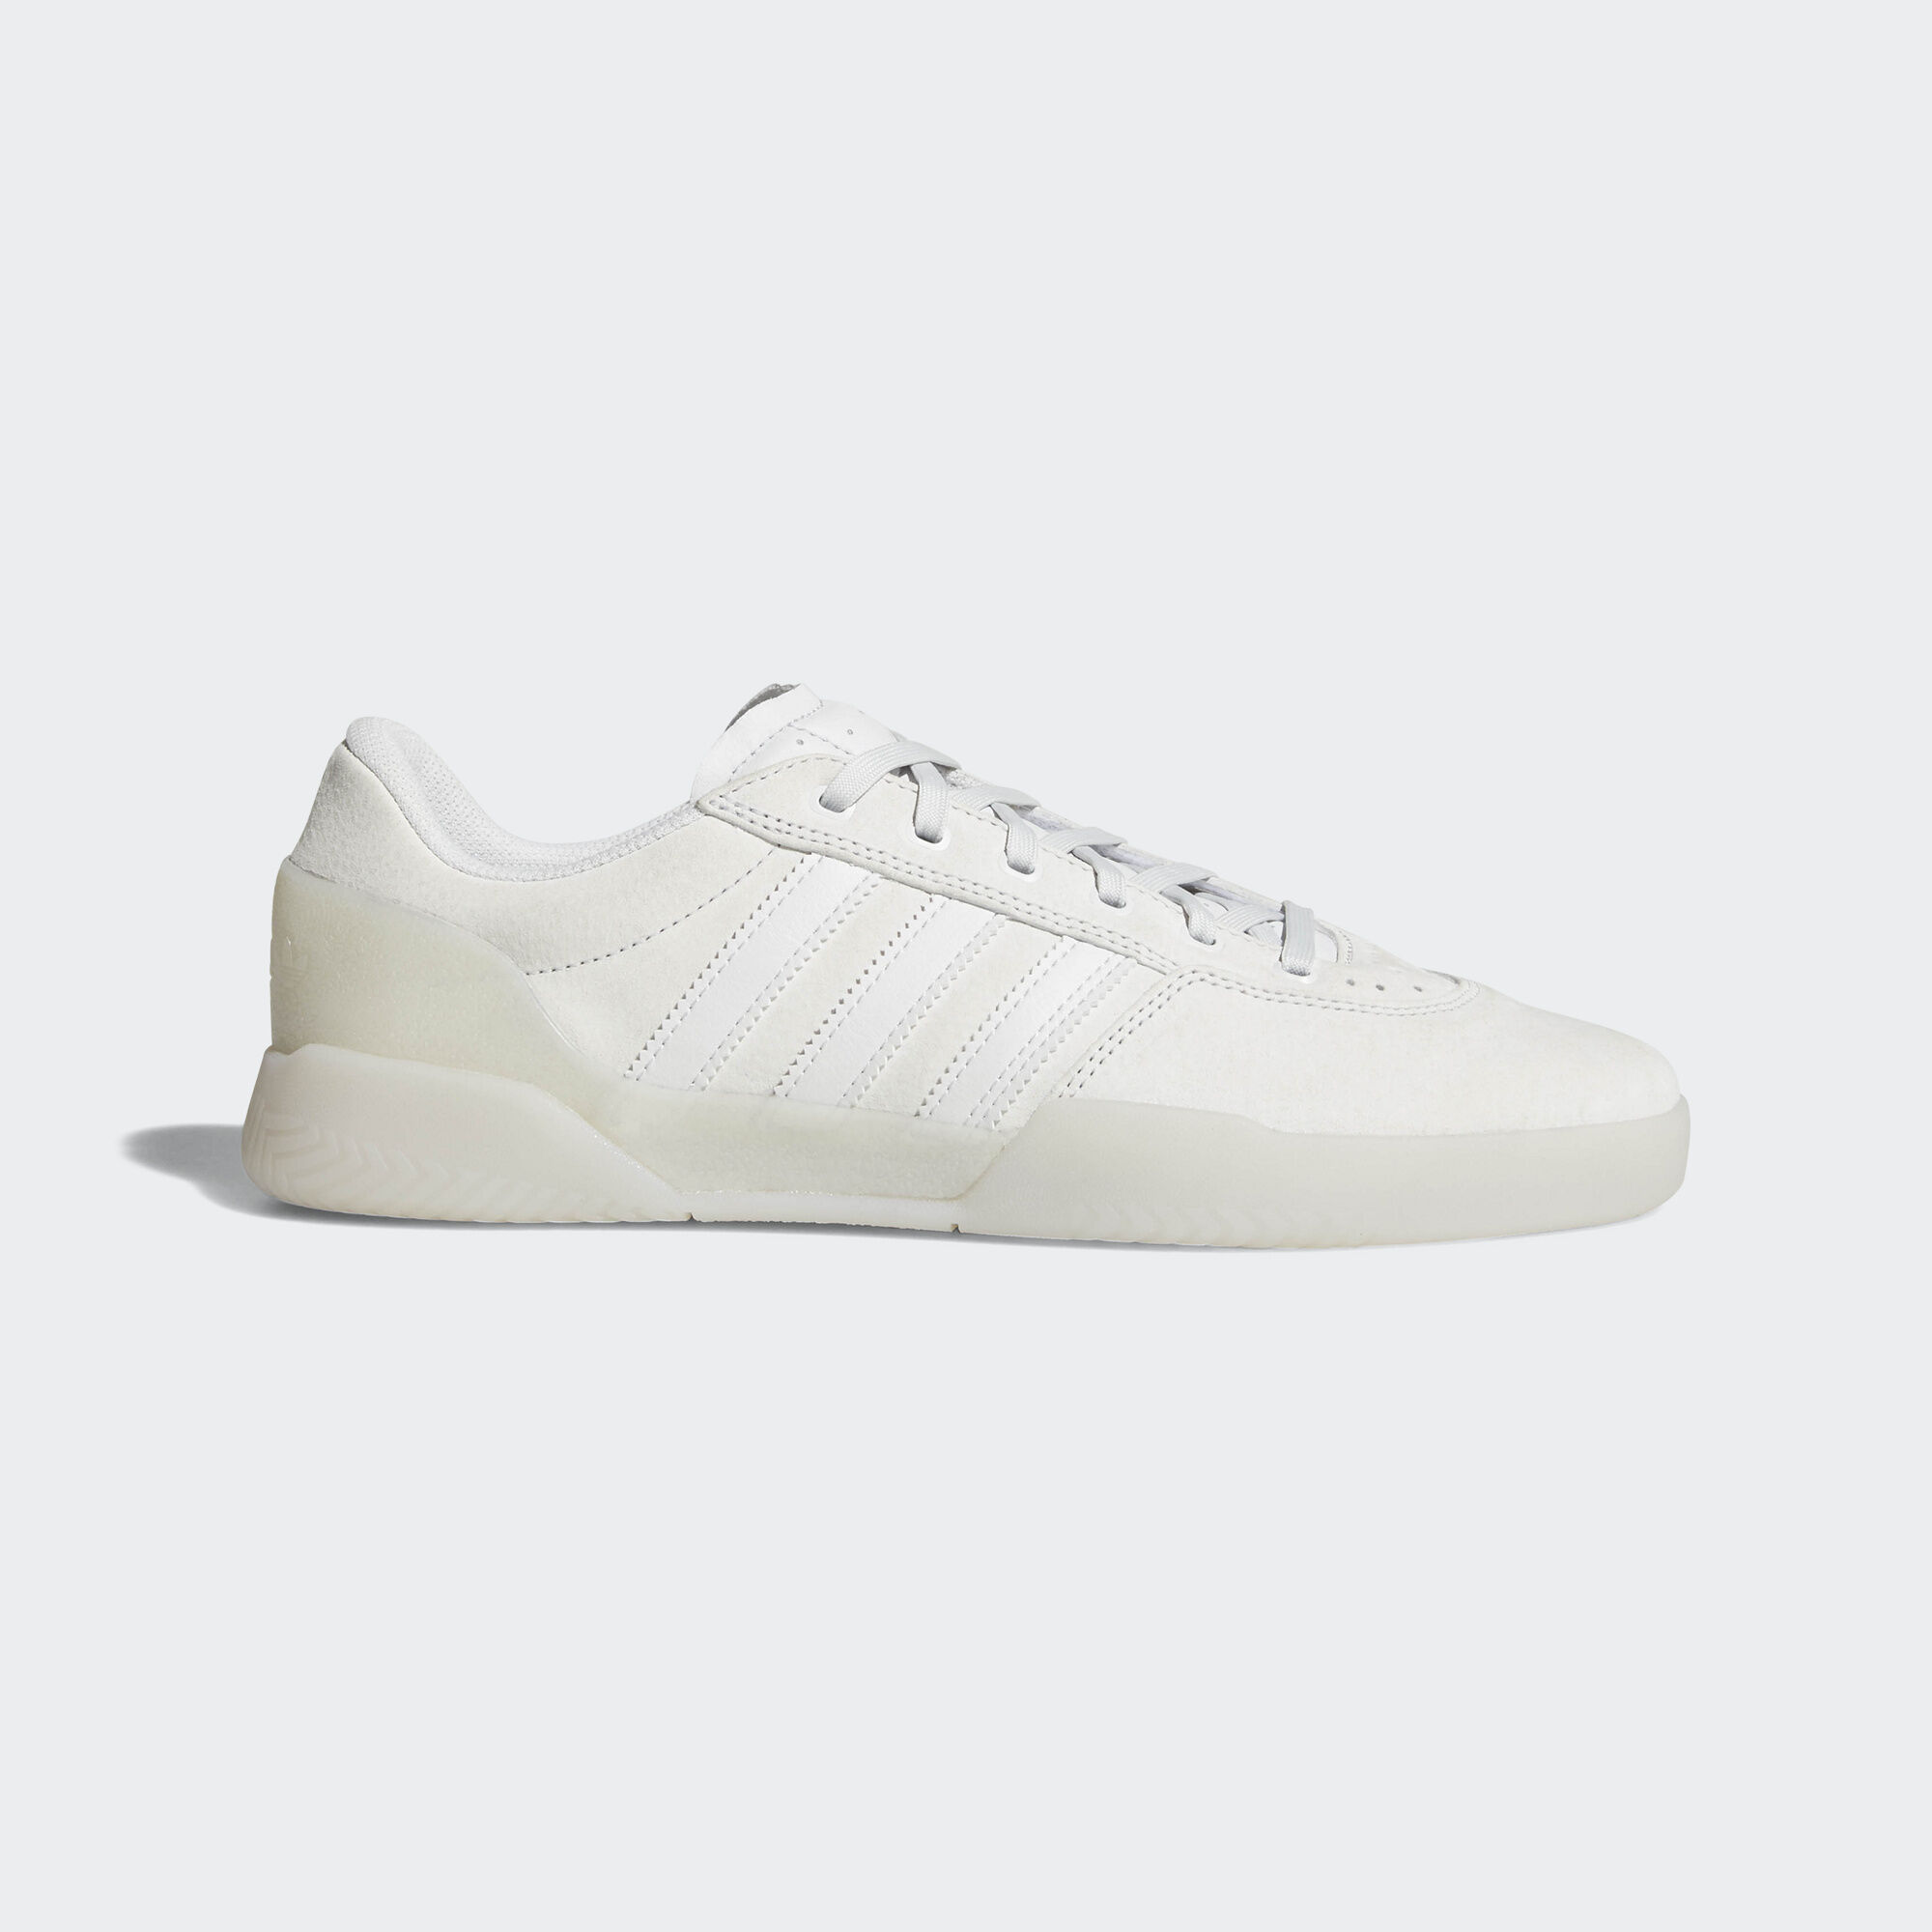 adidas Adidas City Cup Crystal White/ Crystal White/ Crystal White 7xuXG